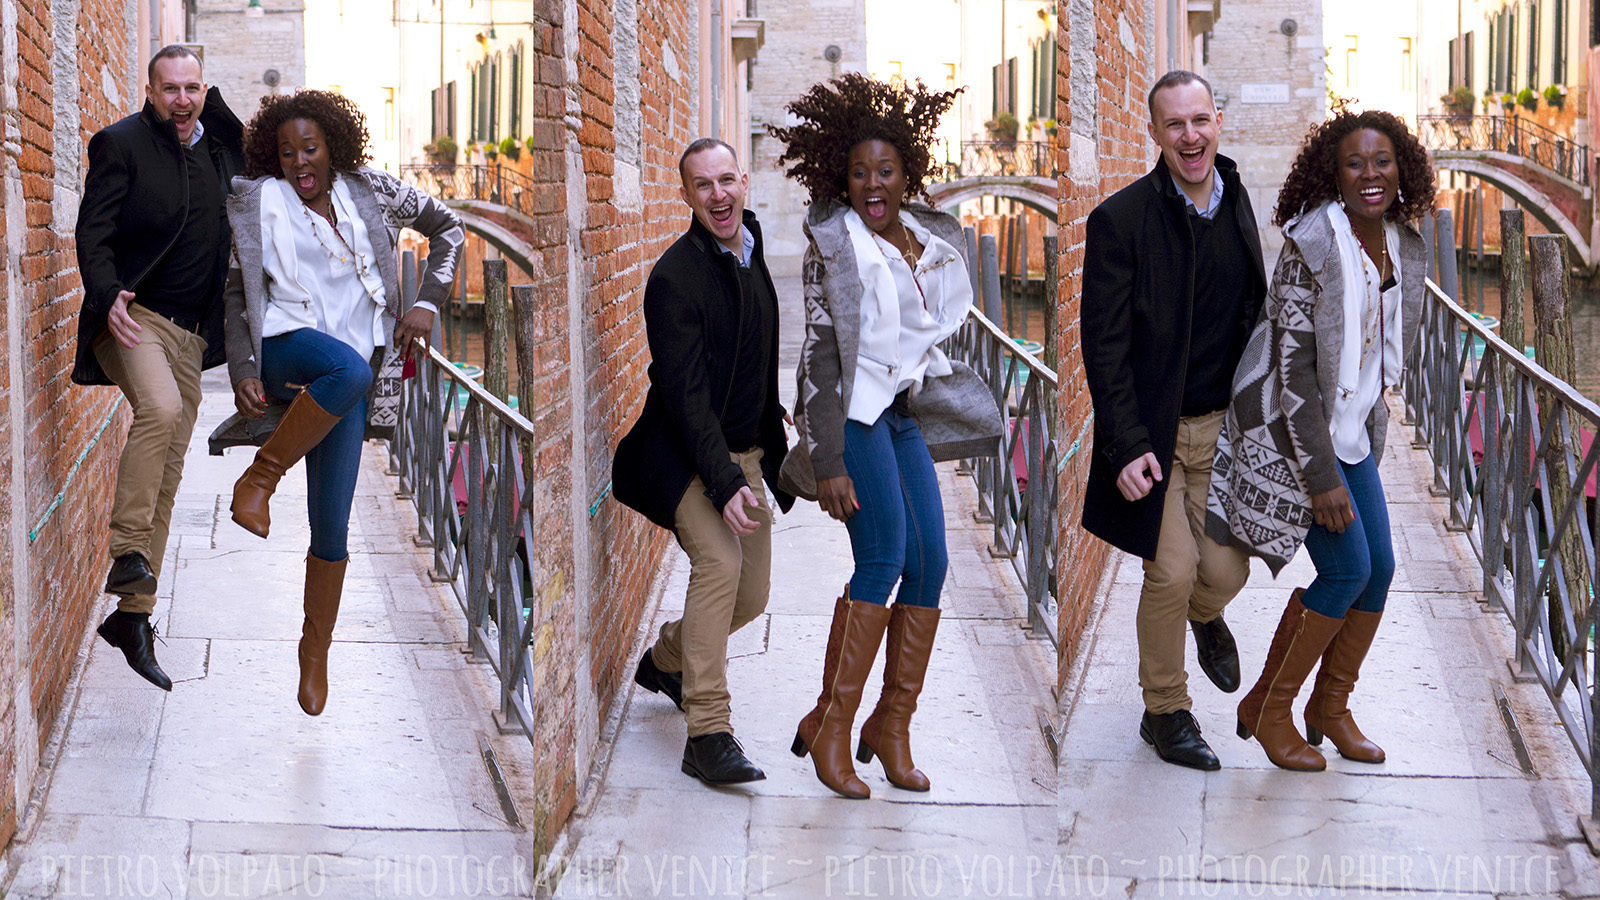 Photographer in Venice for vacation couple photo shoot ~ Having fun and romantic pictures during a walking tour in Venice Italy